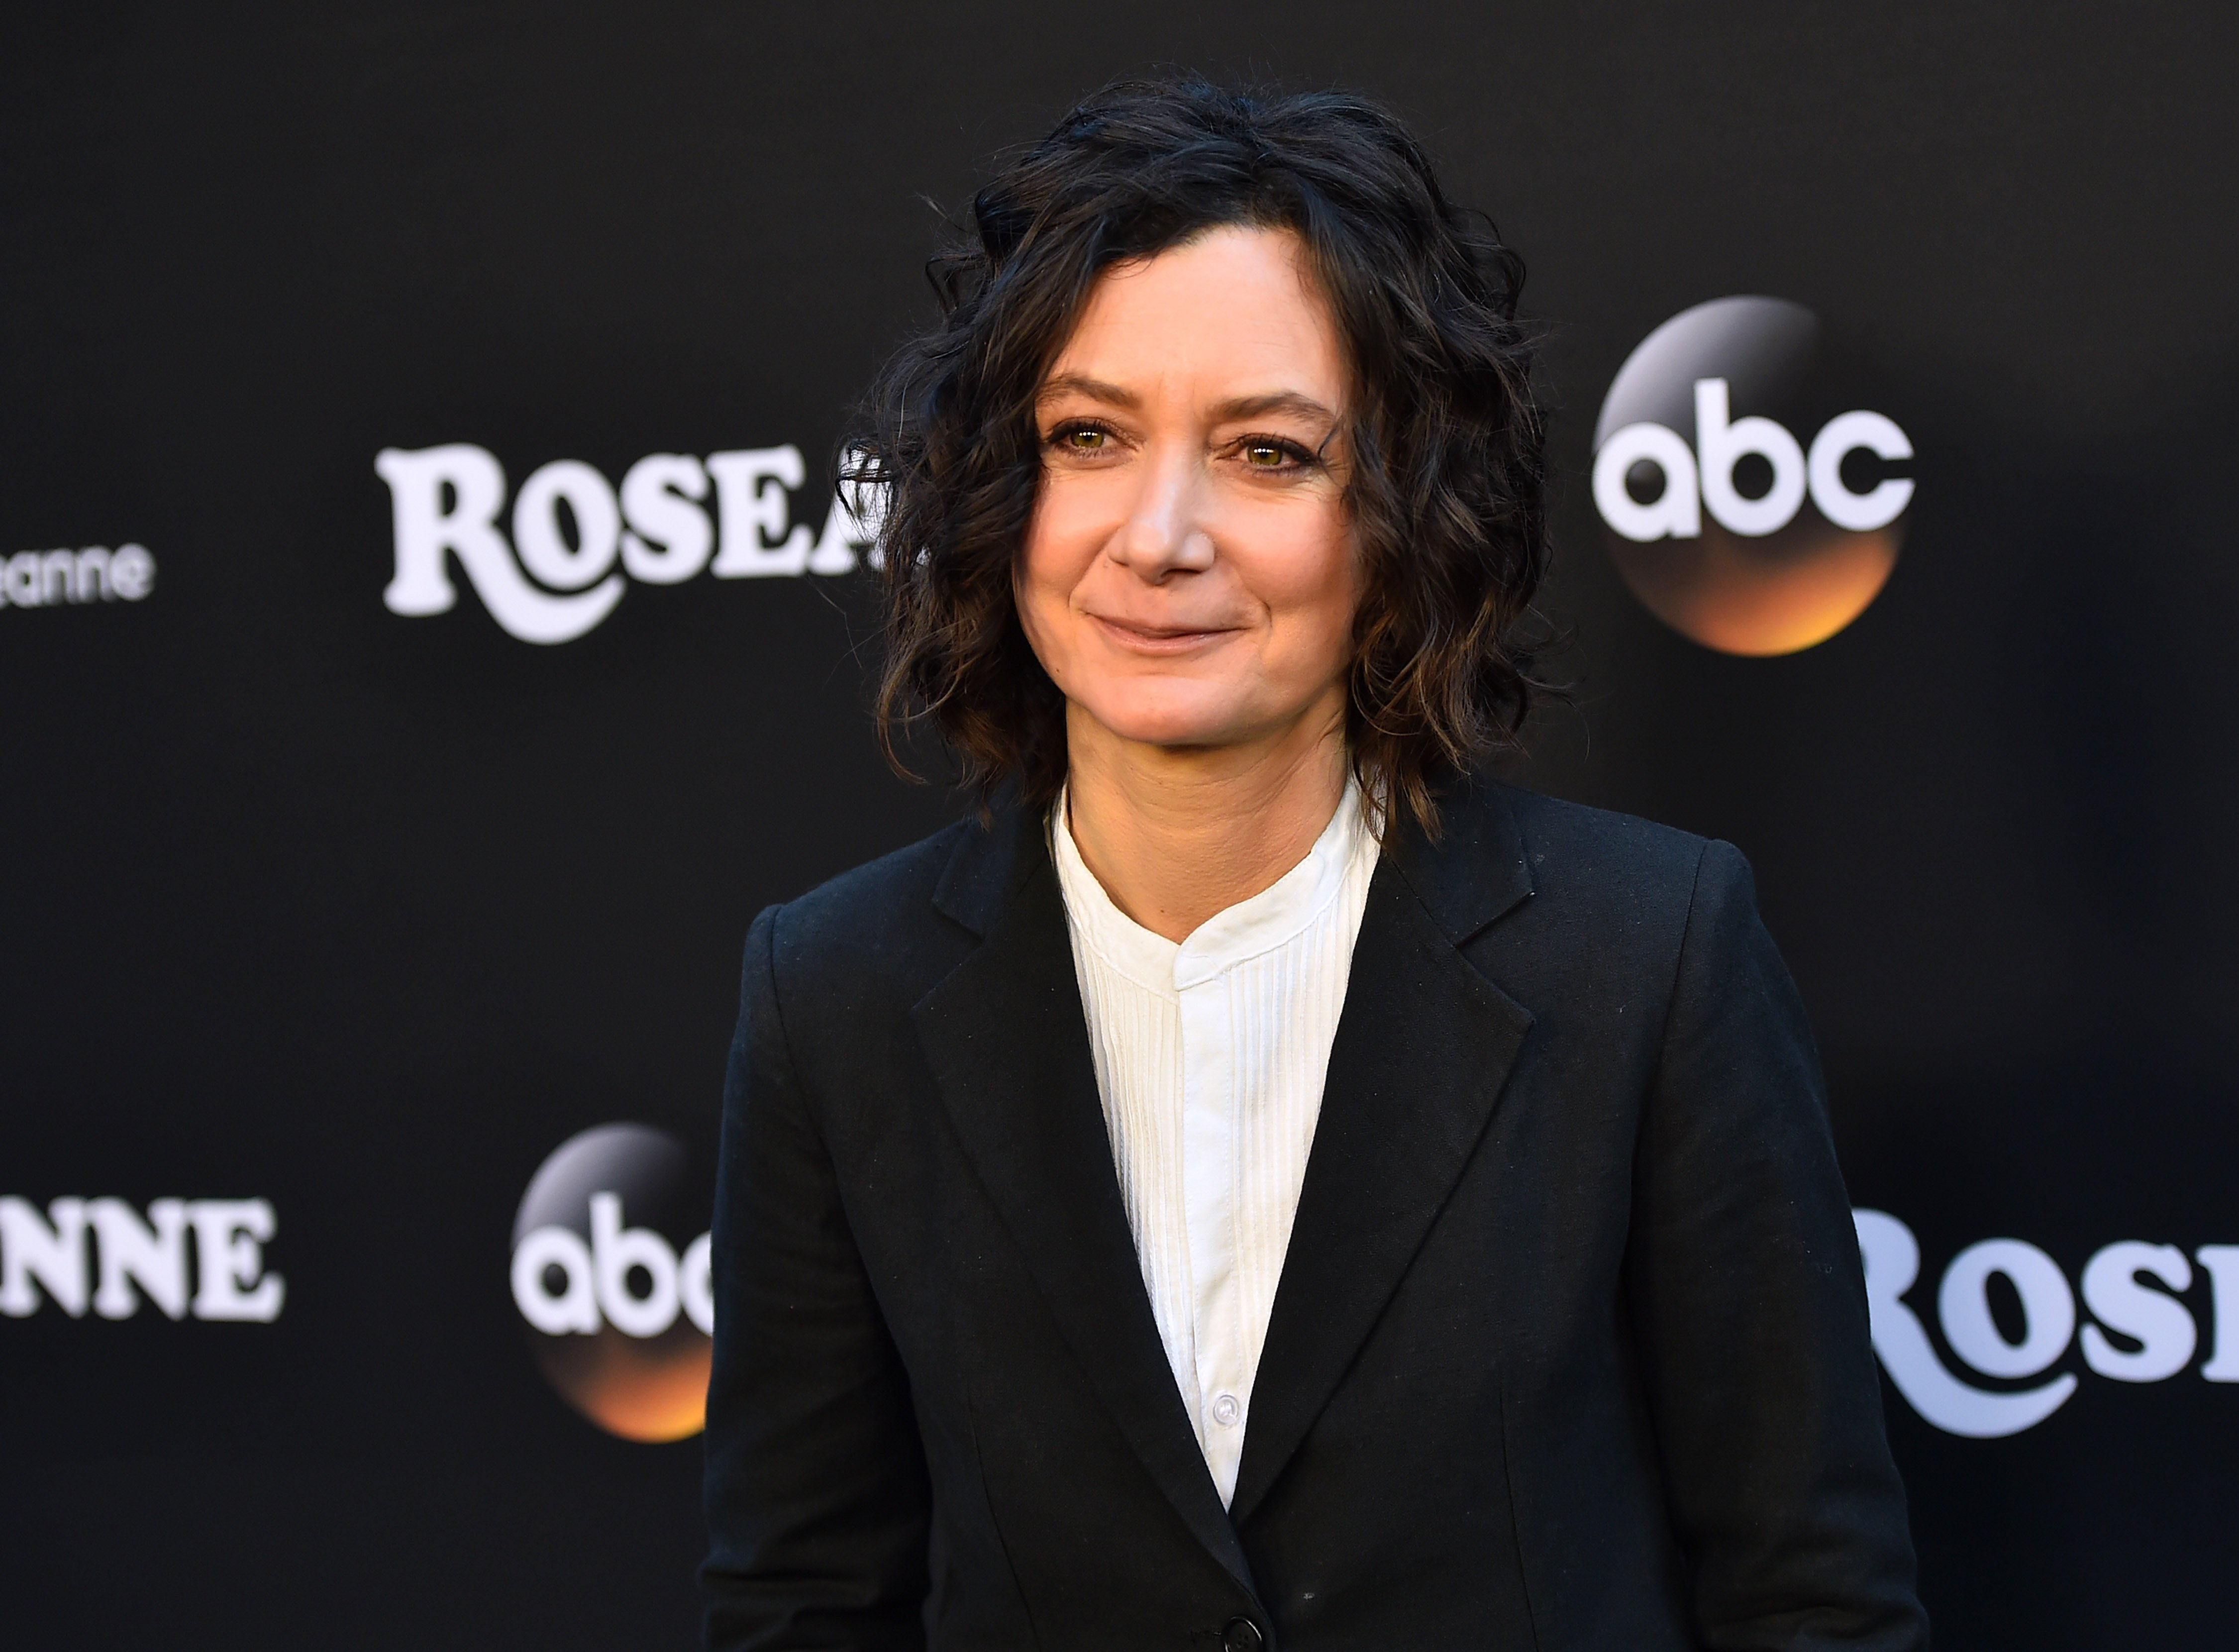 """Sara Gilbert attends the premiere of """"Roseanne"""" at Burbank, California on March 23, 2018 